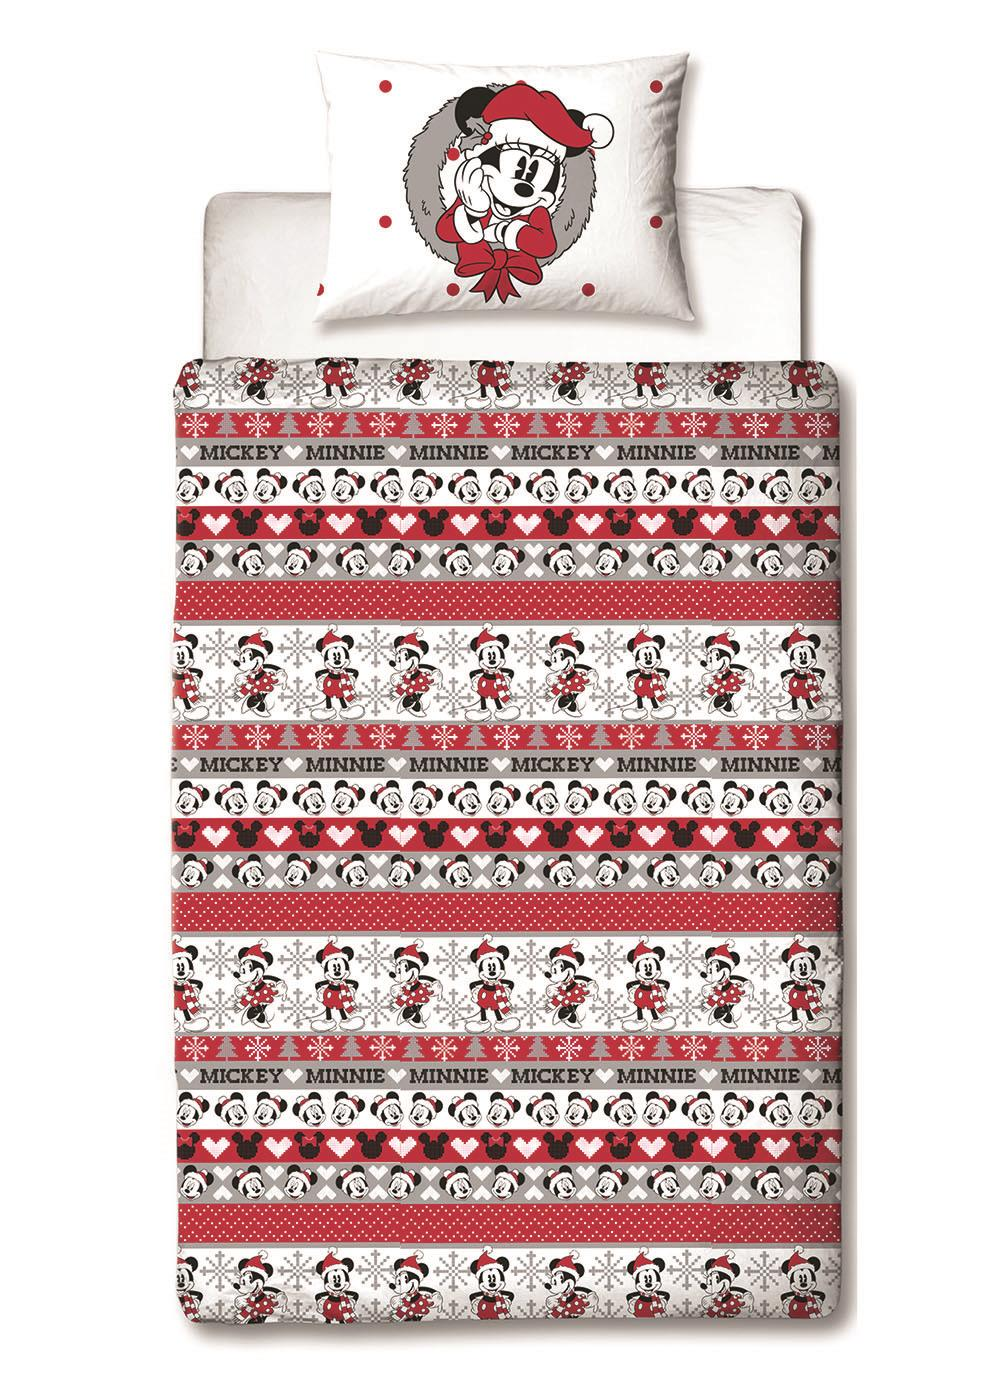 Disney-Mickey-Minnie-mouse-fundas-nordicas-SINGLE-doble-Ropa-De-Cama-Reversible miniatura 15